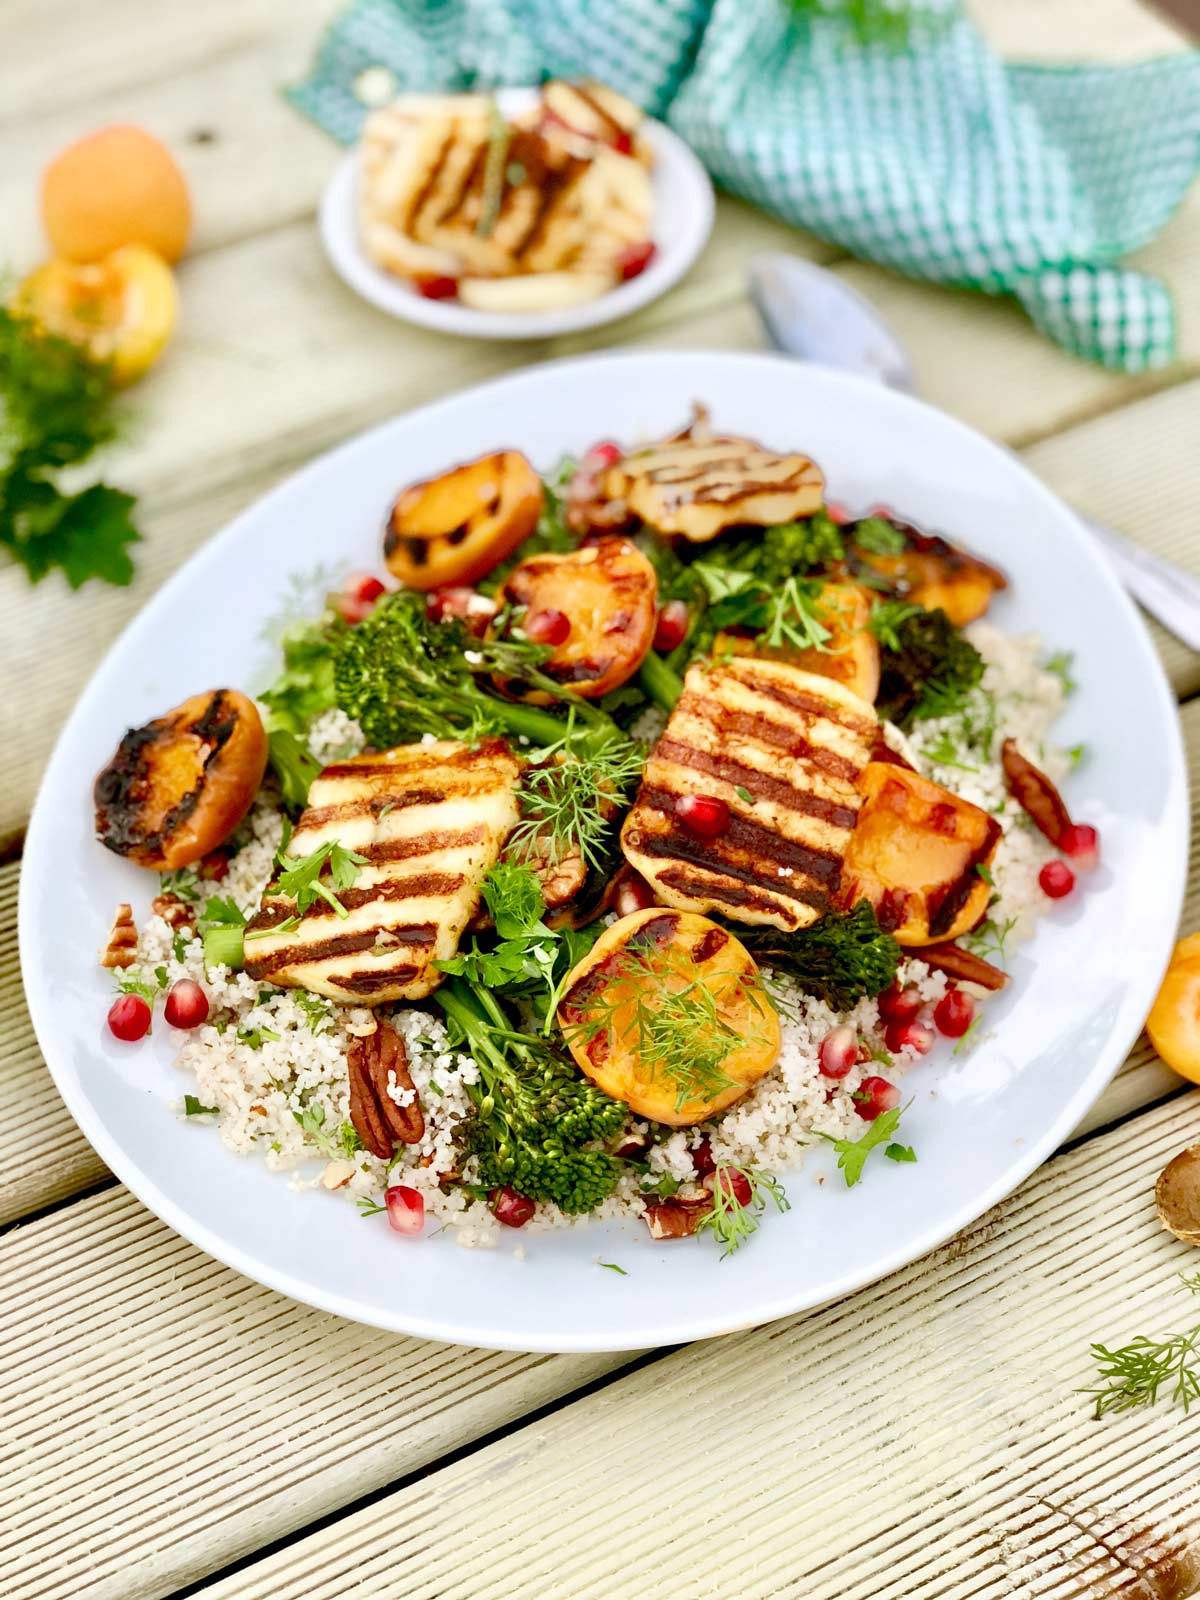 Herby barley couscous with chipotle halloumi and grilled apricots